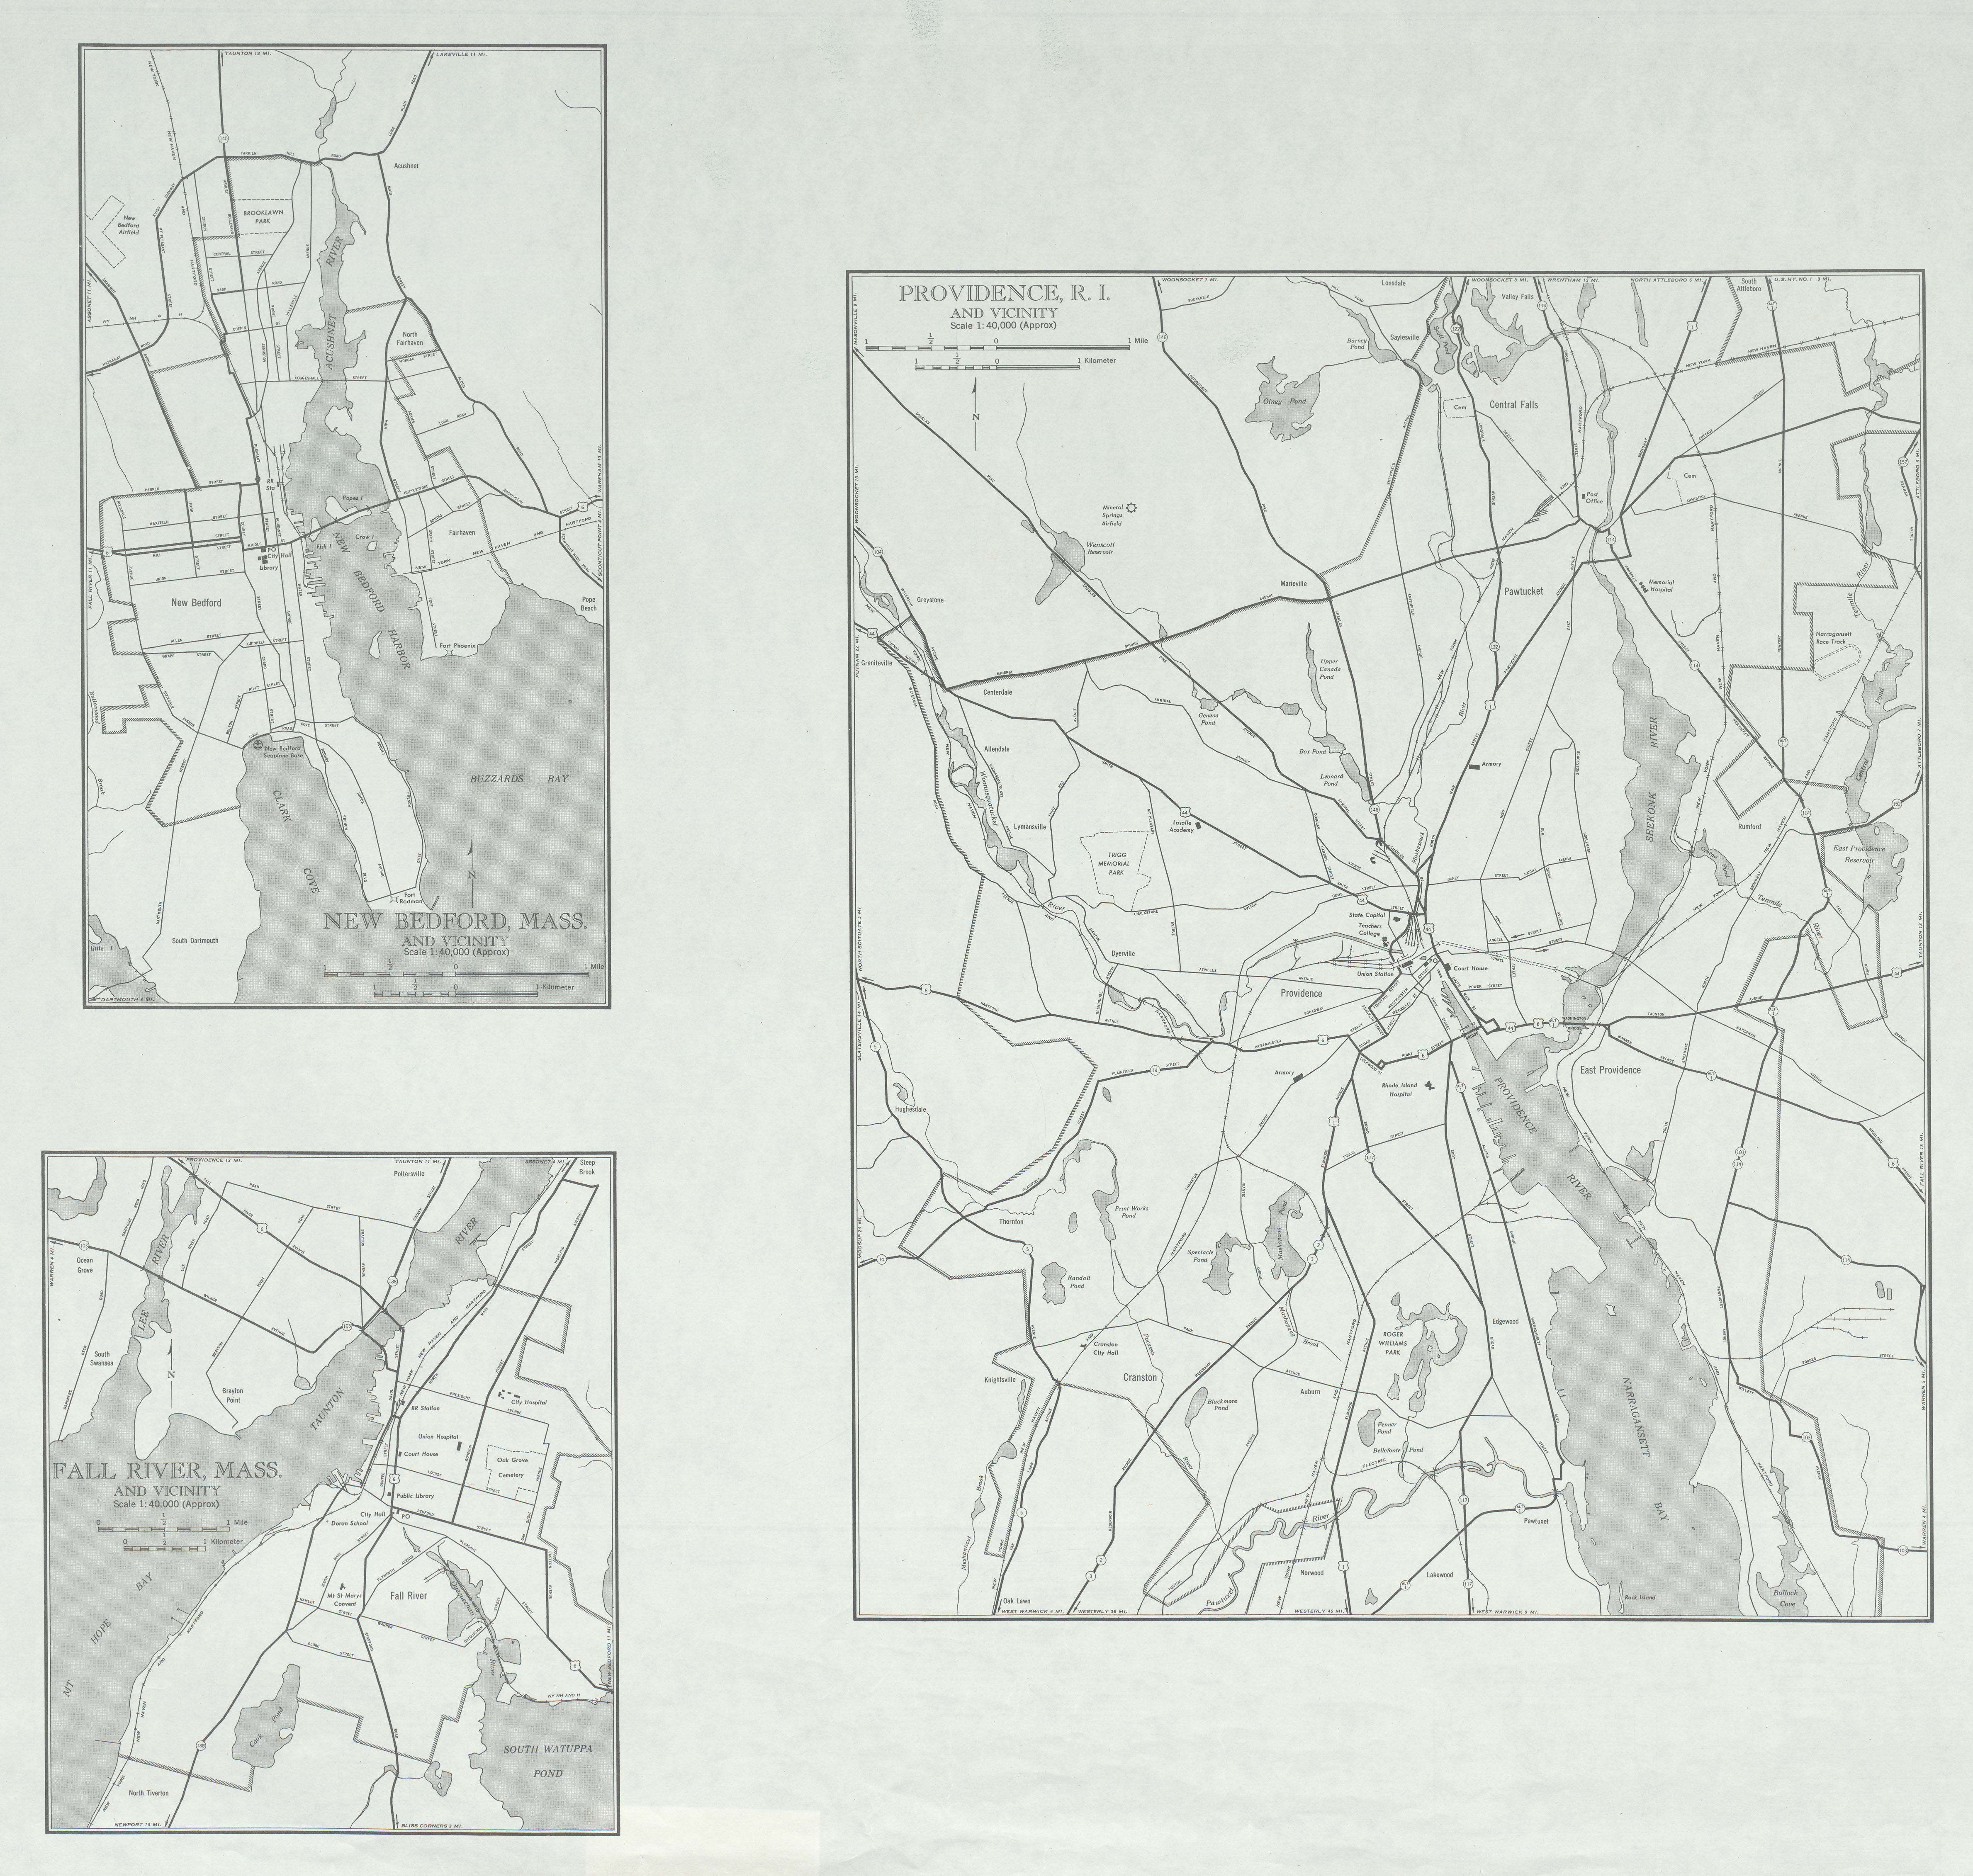 City Maps of New Bedford, Fall River, Massachusetts and Providence, Rhode Island, United States 1947